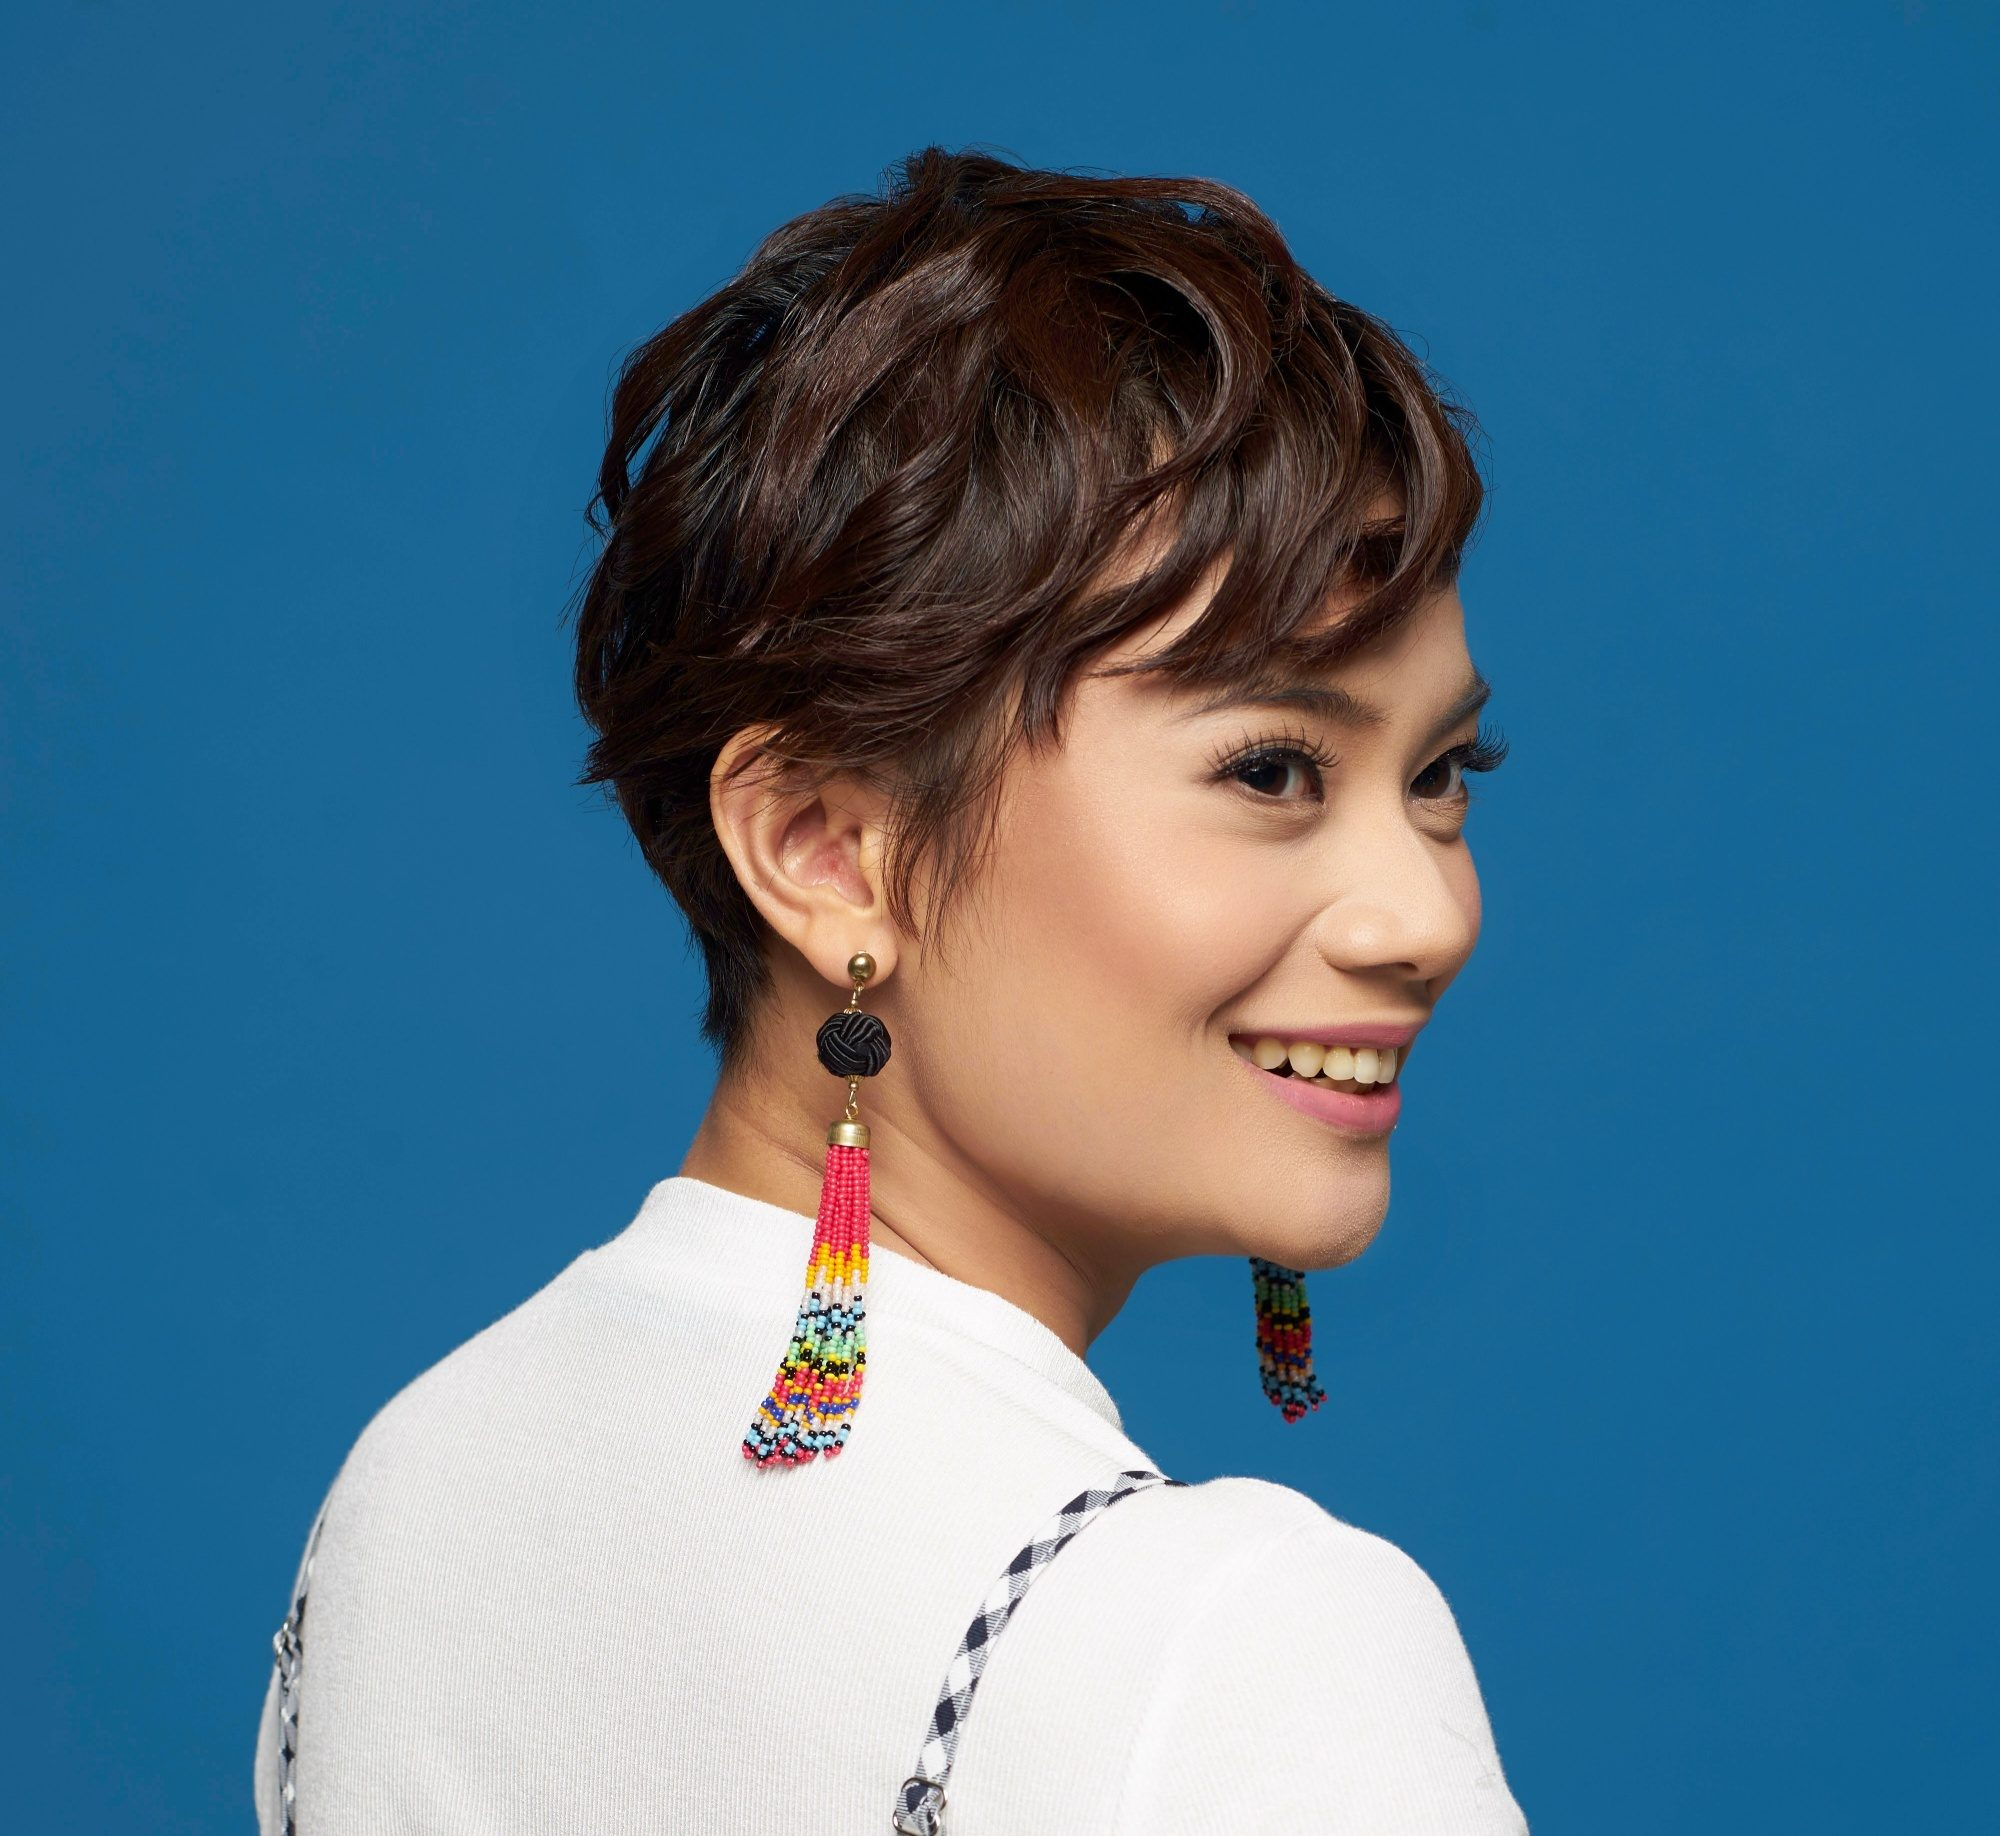 Read This Before You Get a Pixie Cut and Know What to Consider